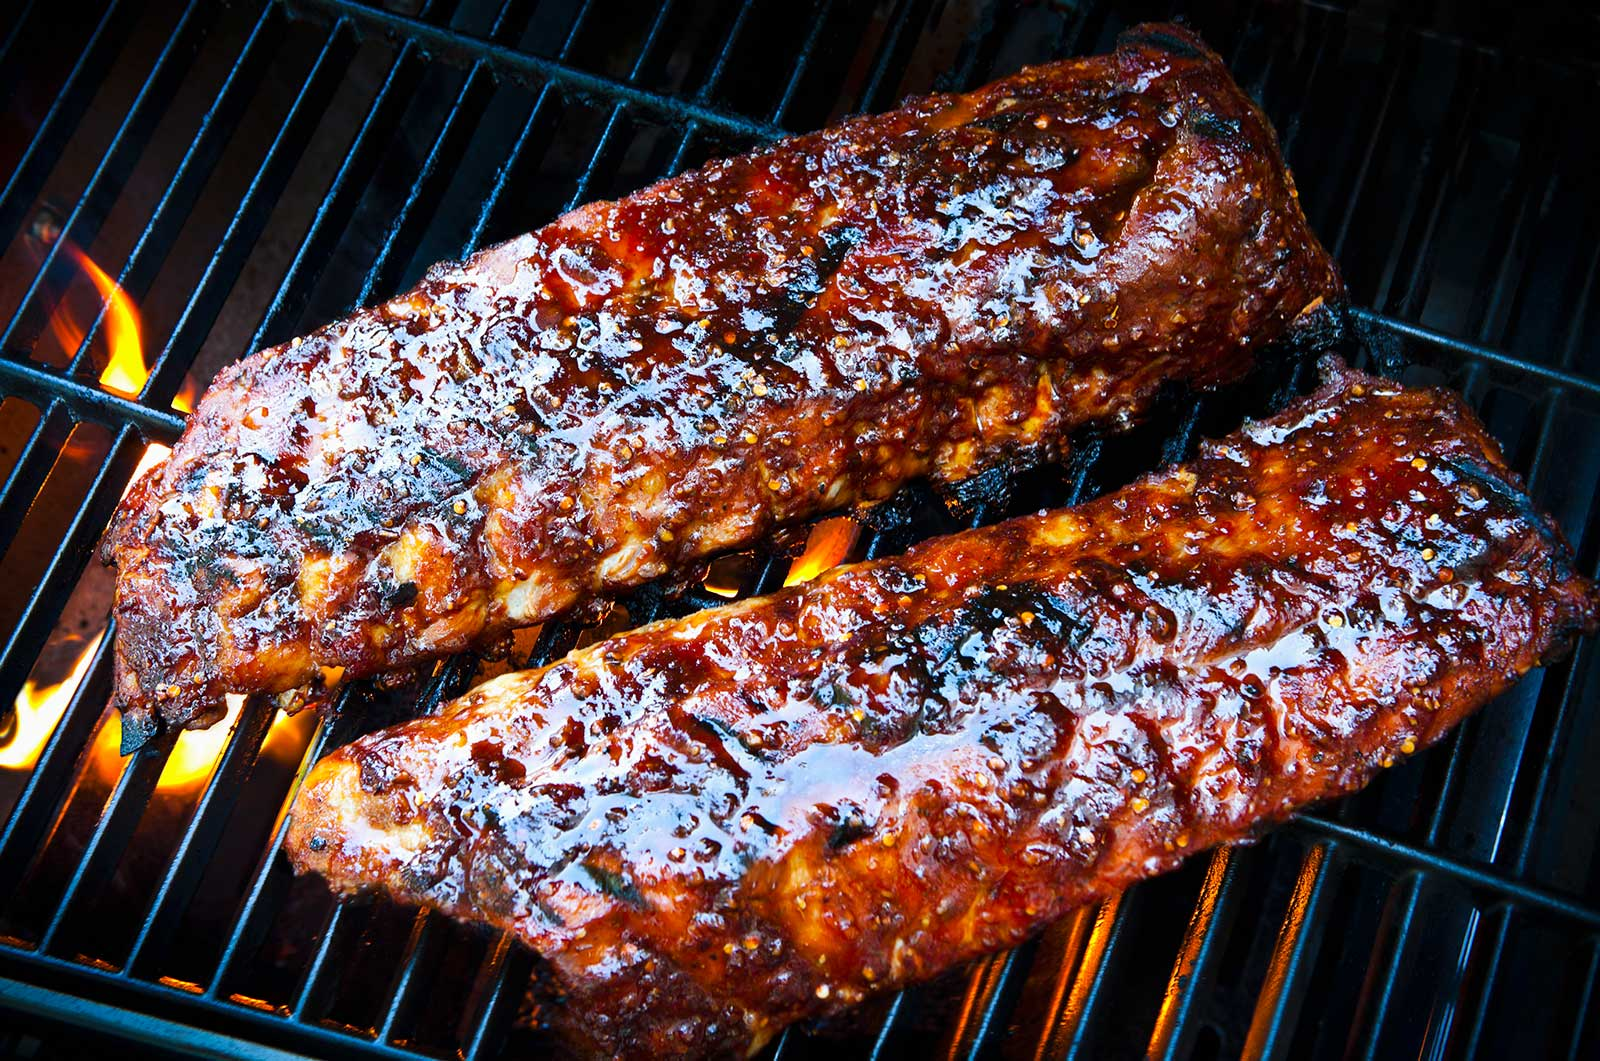 butchers block bbq spare ribs pulled pork and catering options